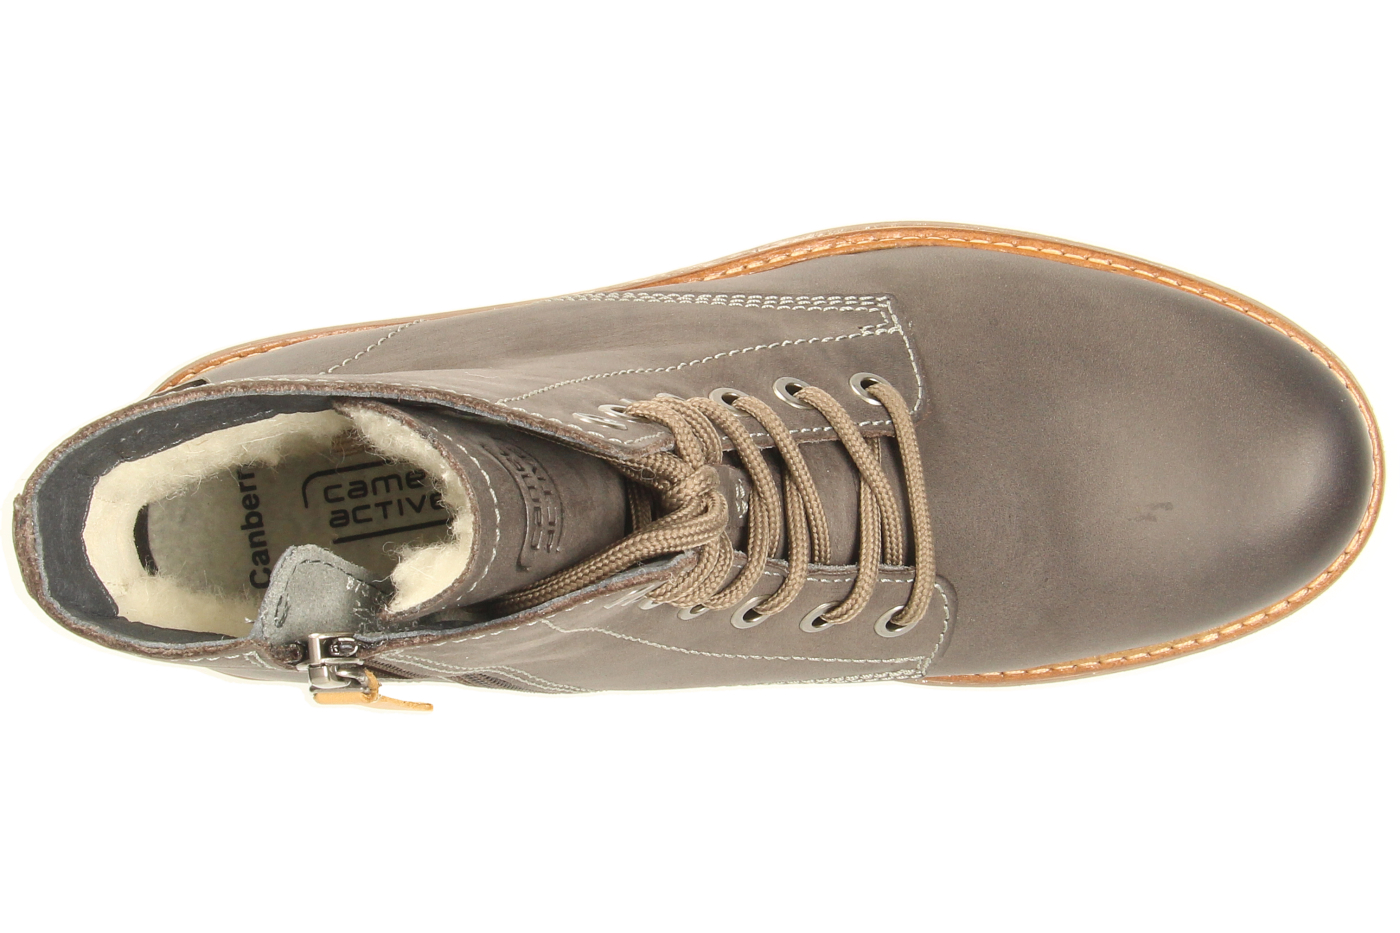 camel active Canberra 75 Stiefel 873.75.12 6.5